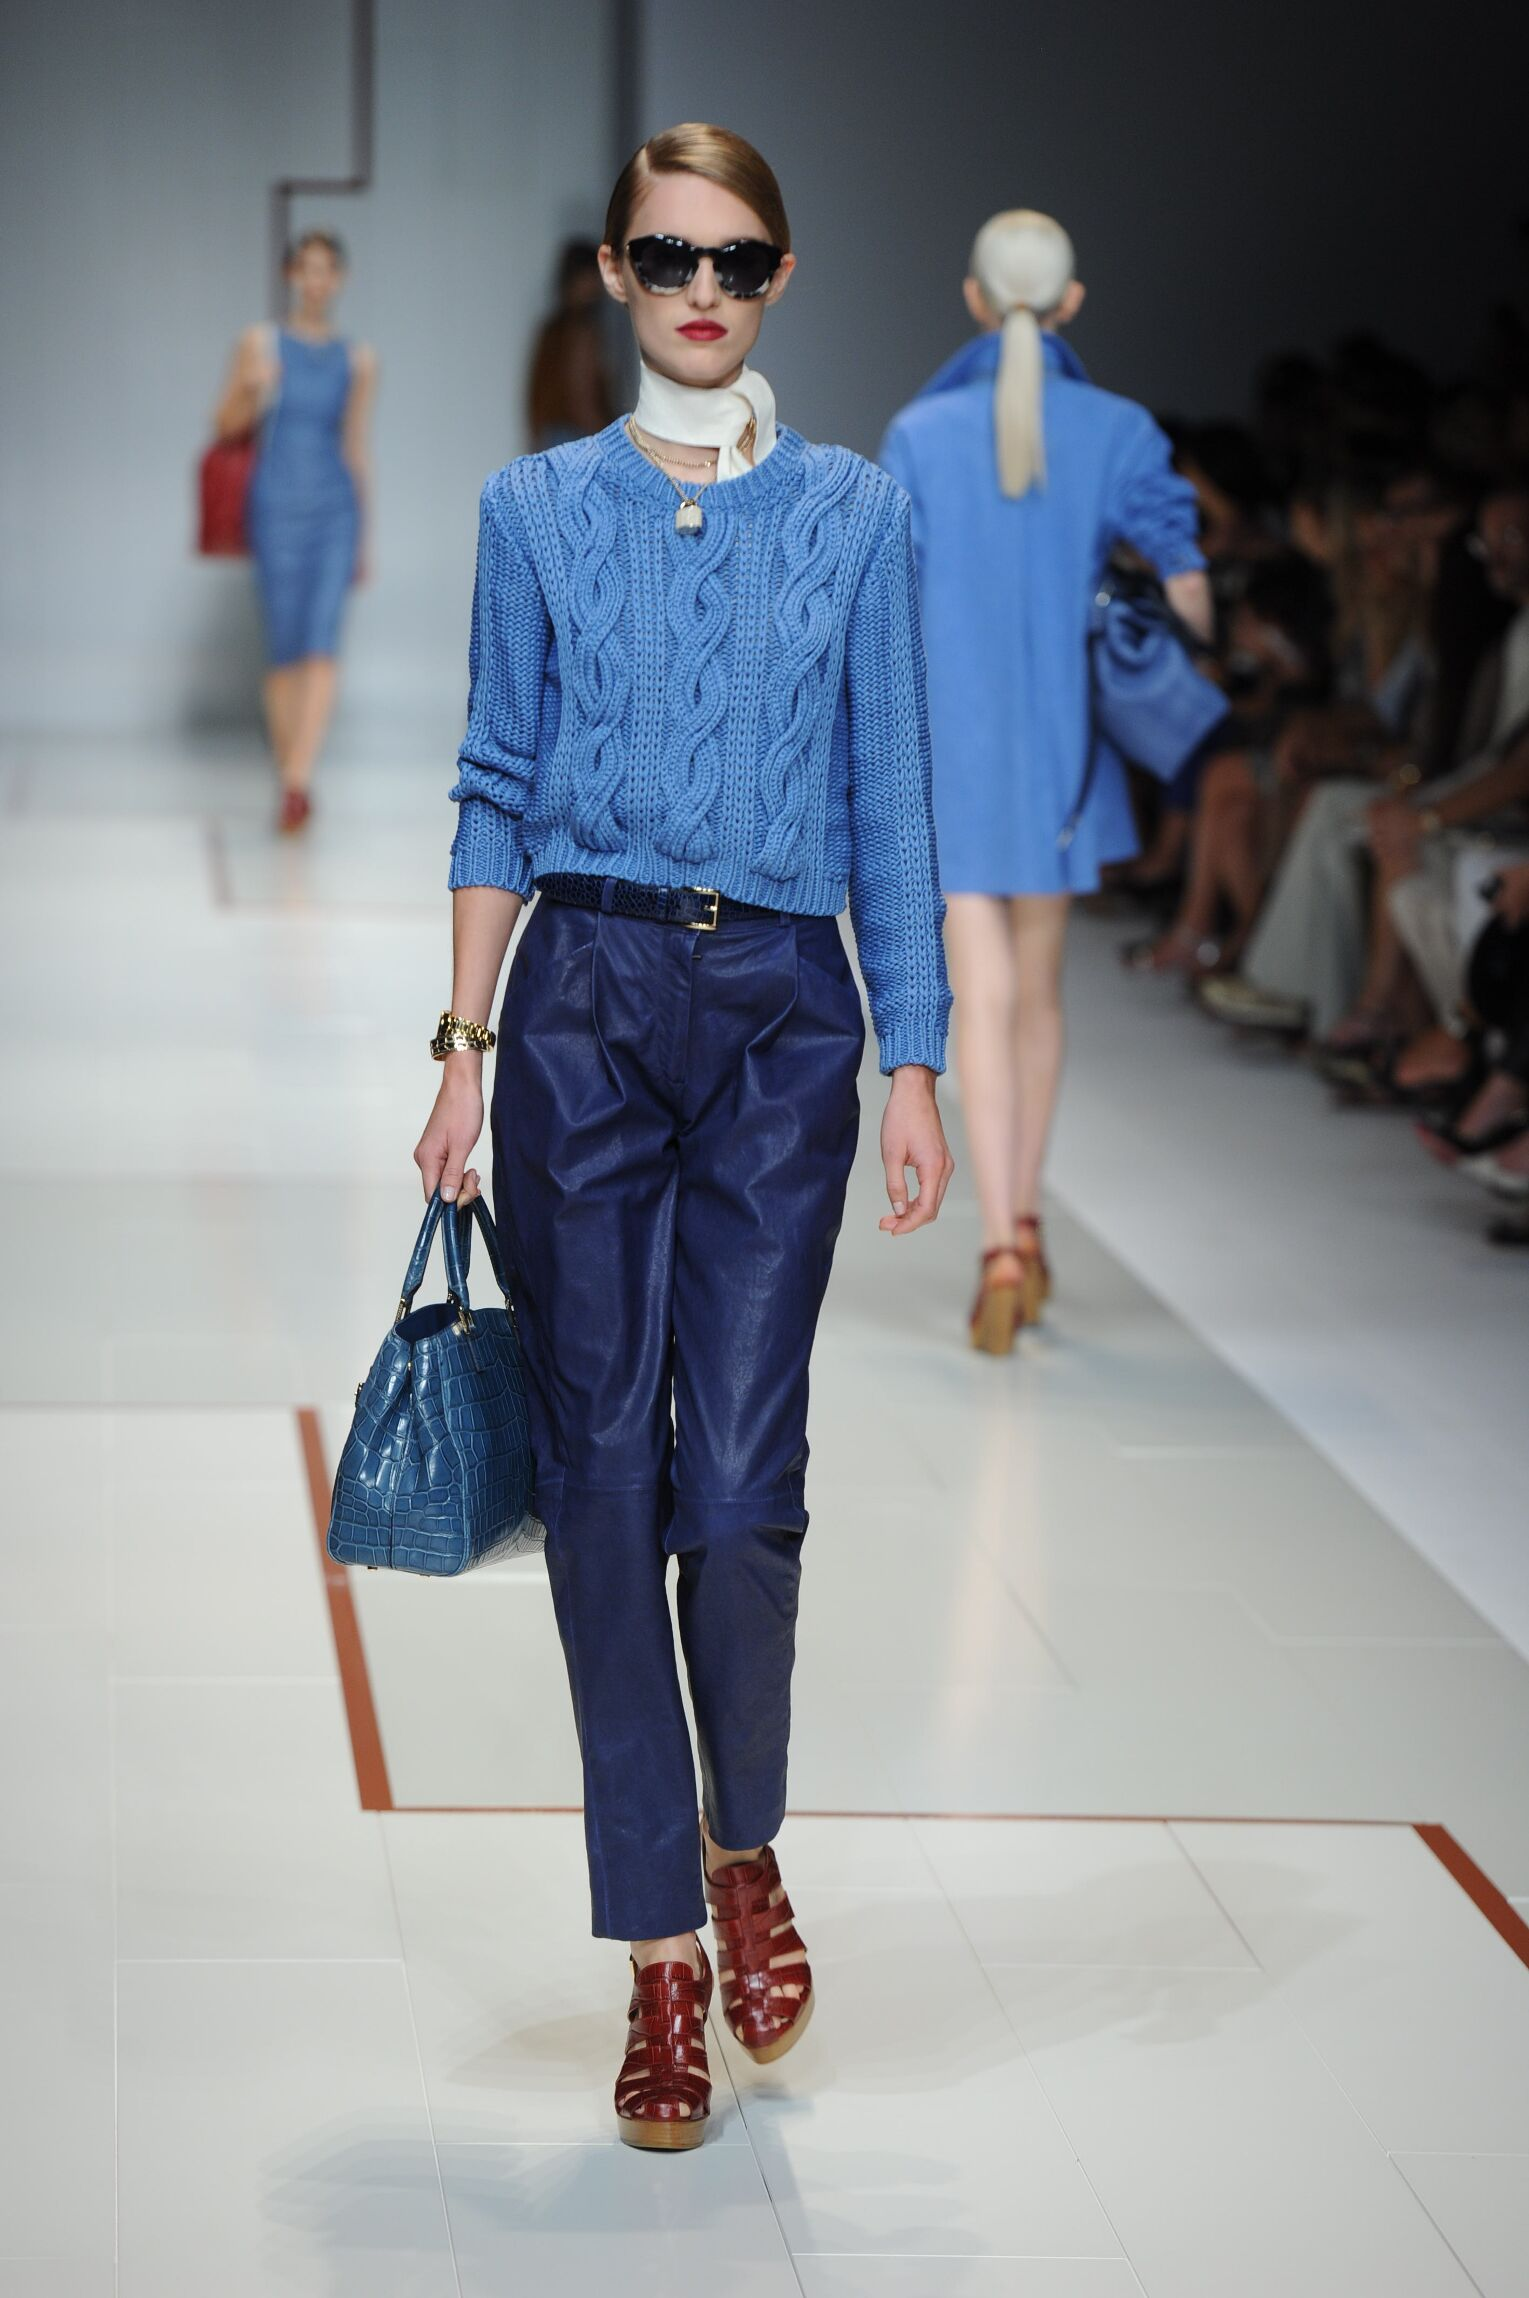 Trussardi Summer 2015 Catwalk